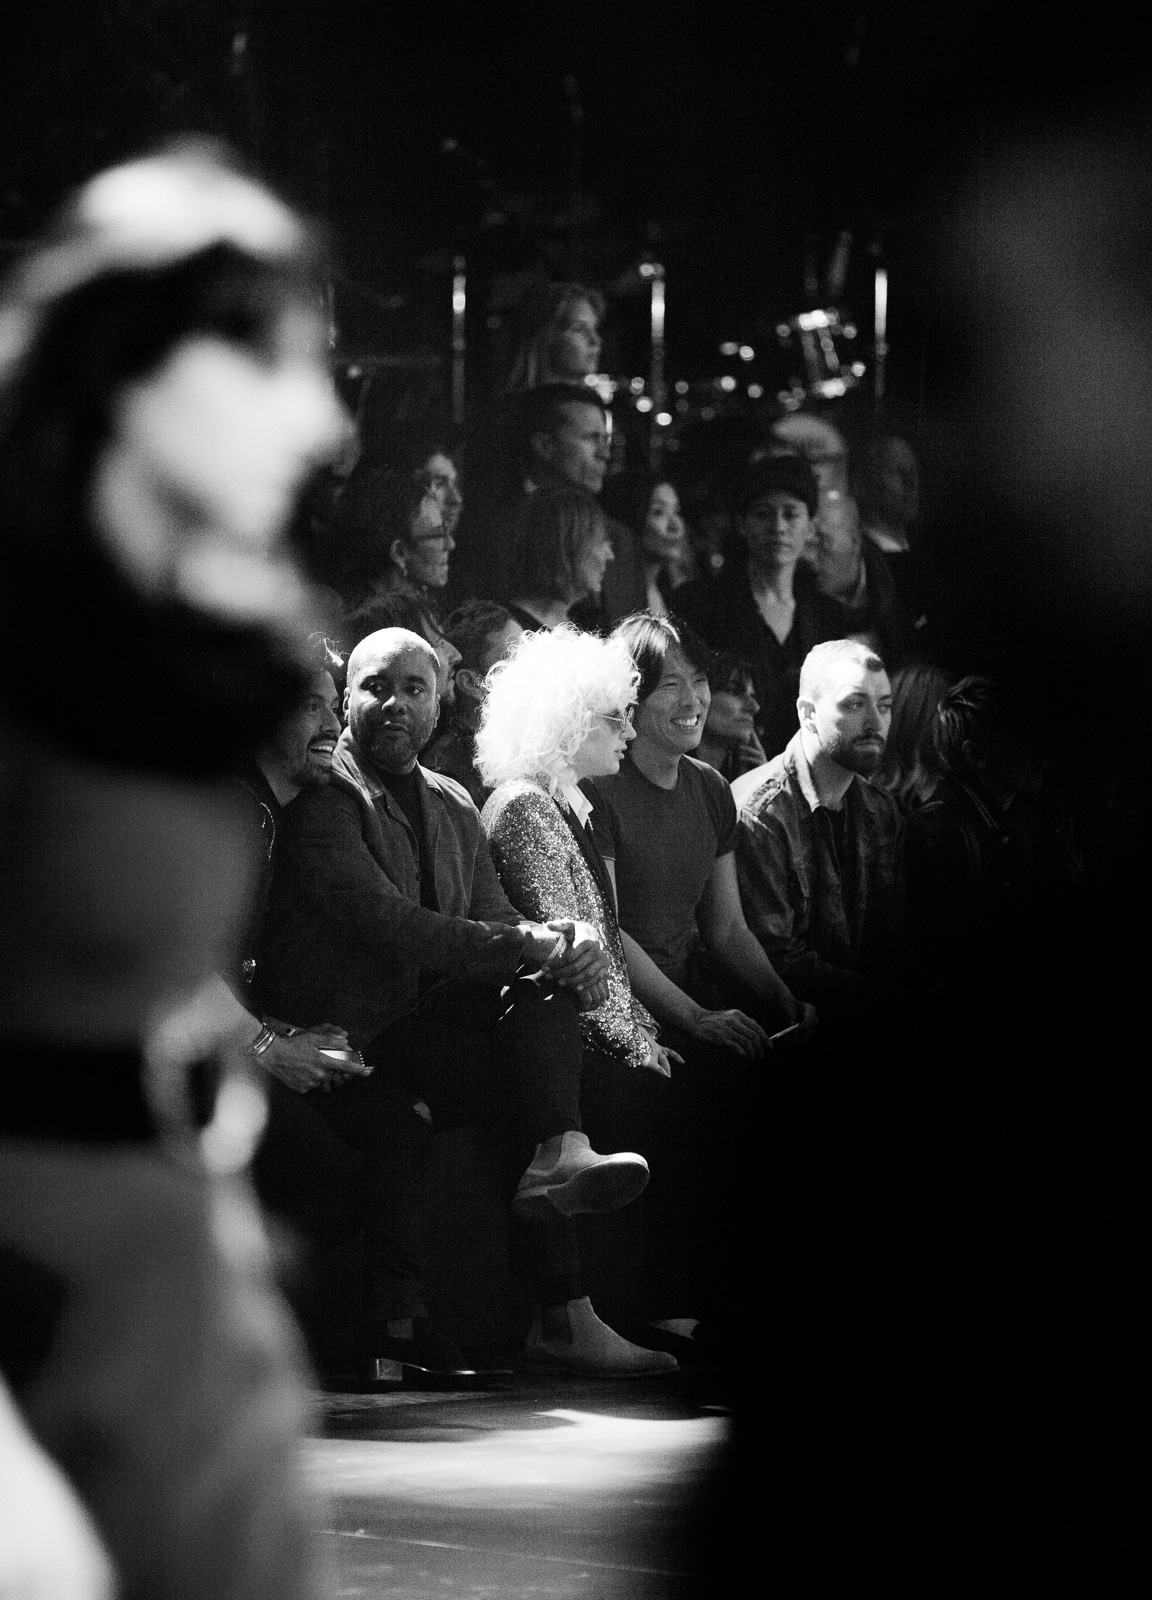 Lee Daniels, Lady Gaga and Sam Smith in the front row at Saint Laurent FW16 (Hedi Slimane) at the Palladium on February 10, 2016 in Los Angeles, California.